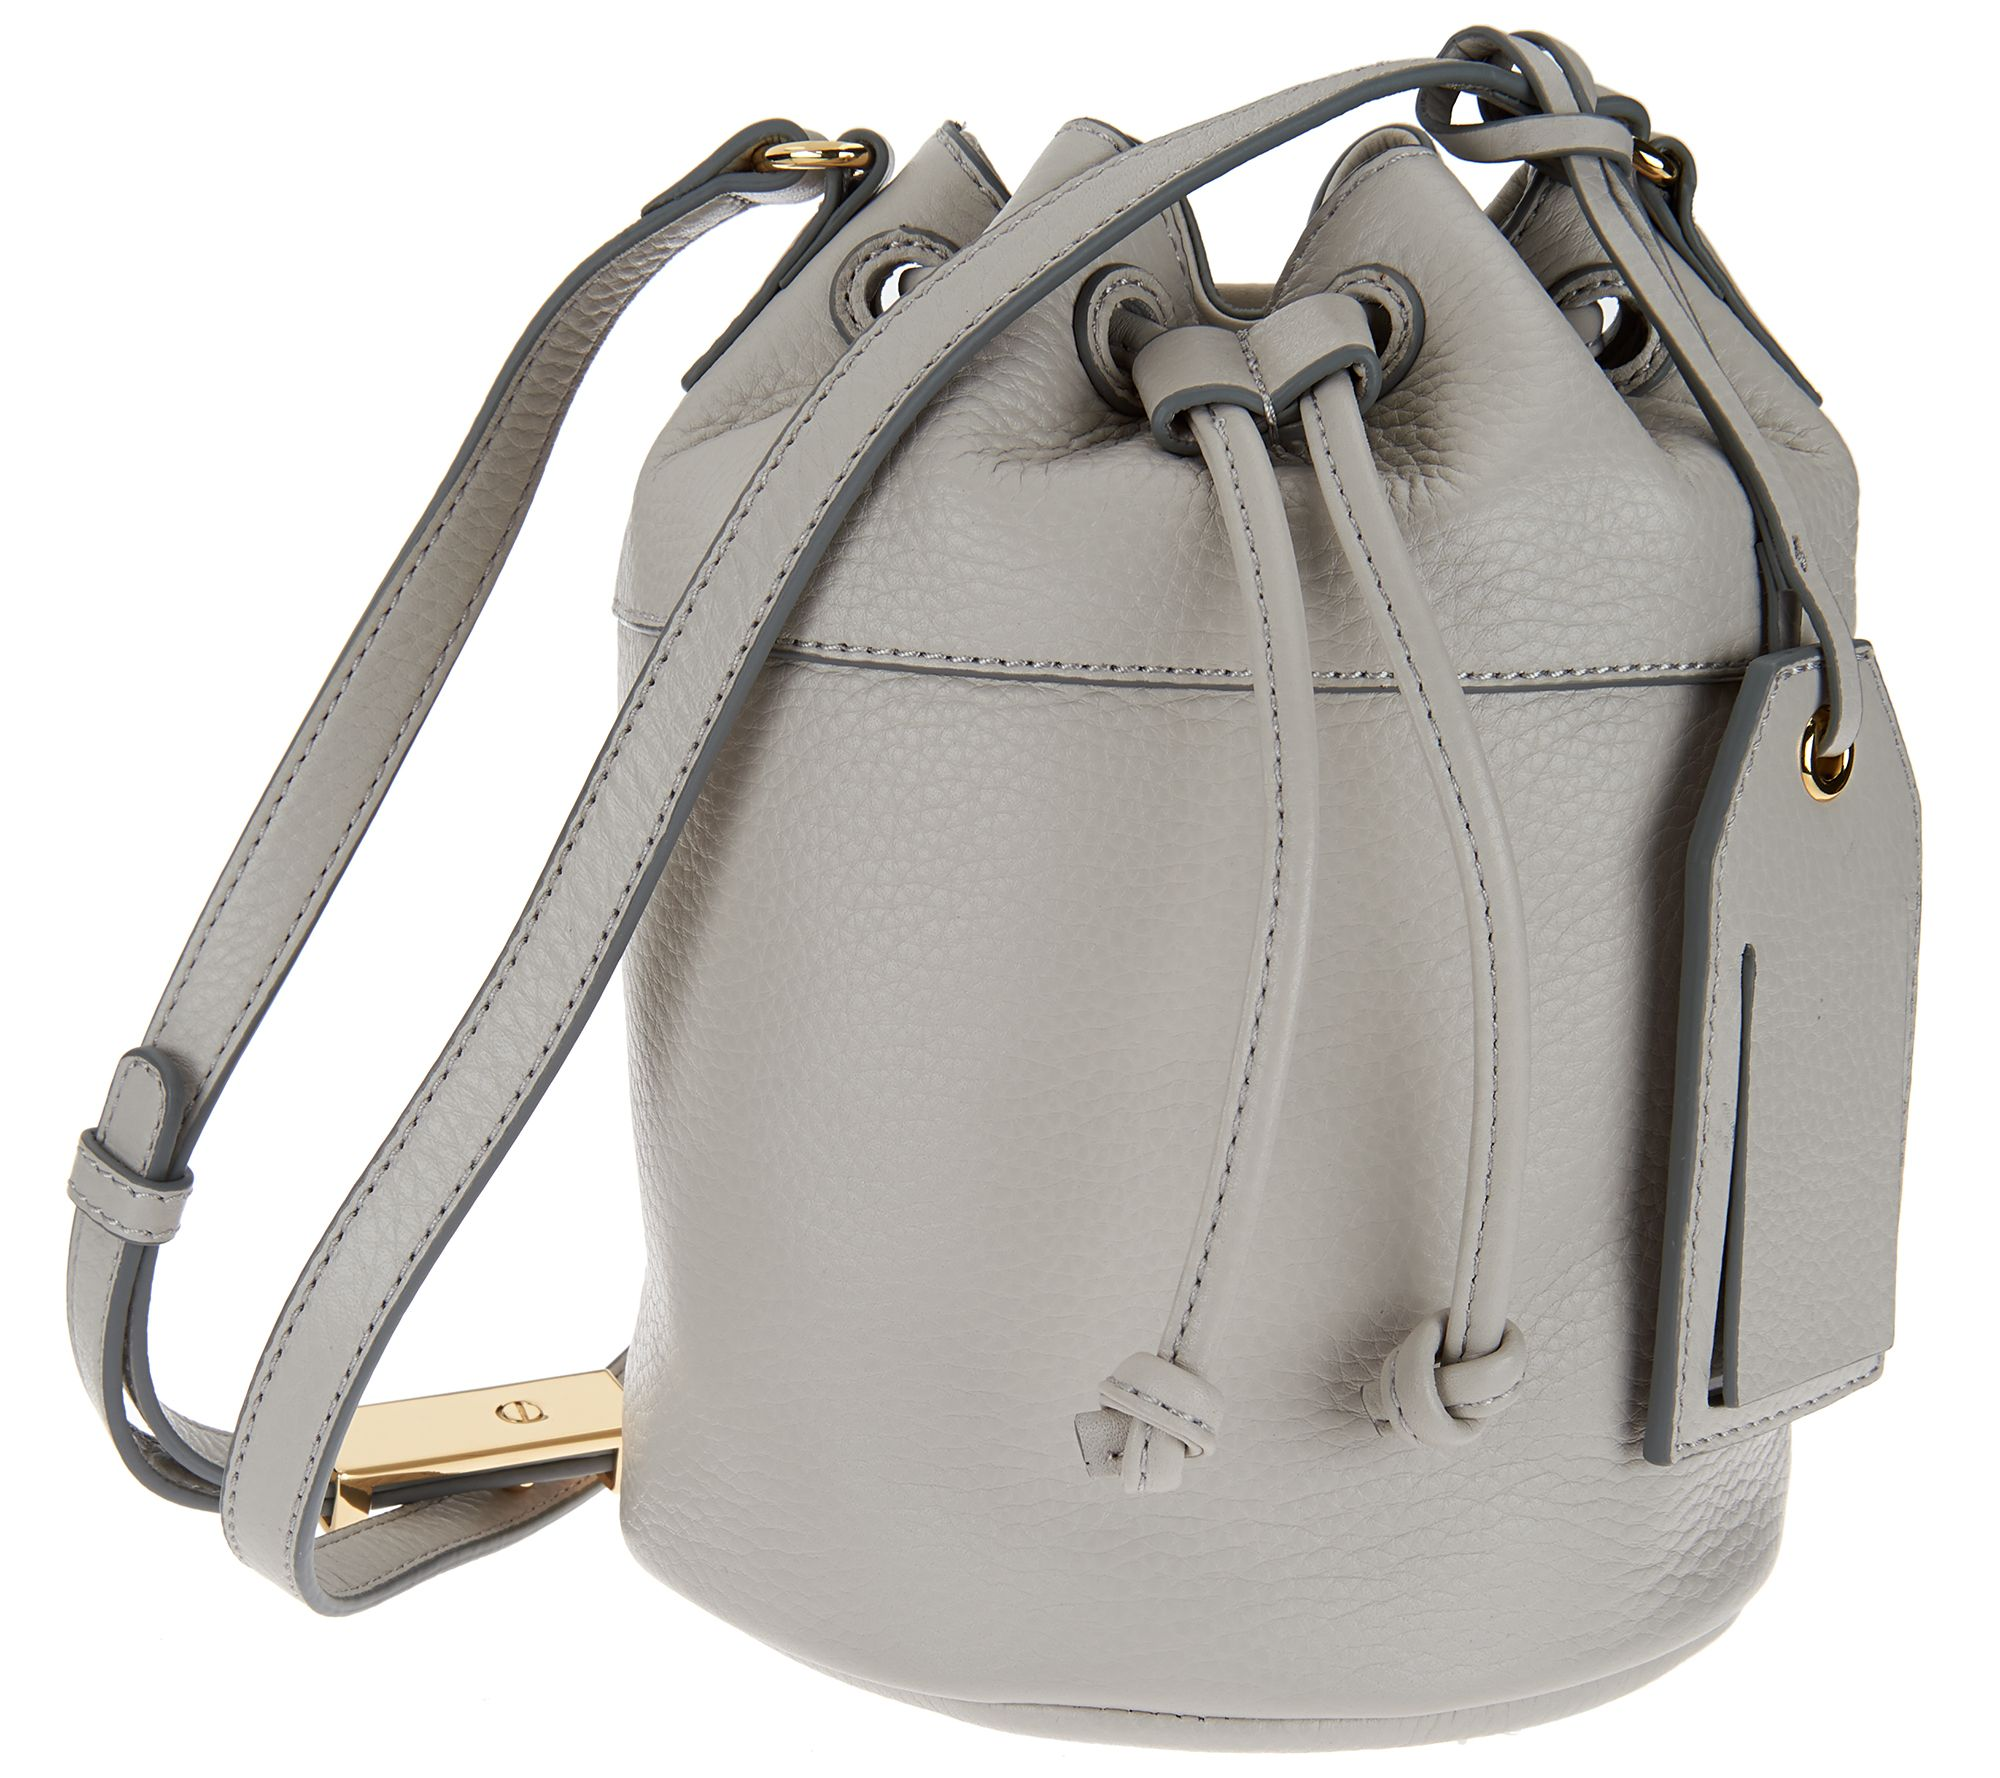 Isaac Mizrahi Live! Nolita Pebble Leather Mini Bucket Bag